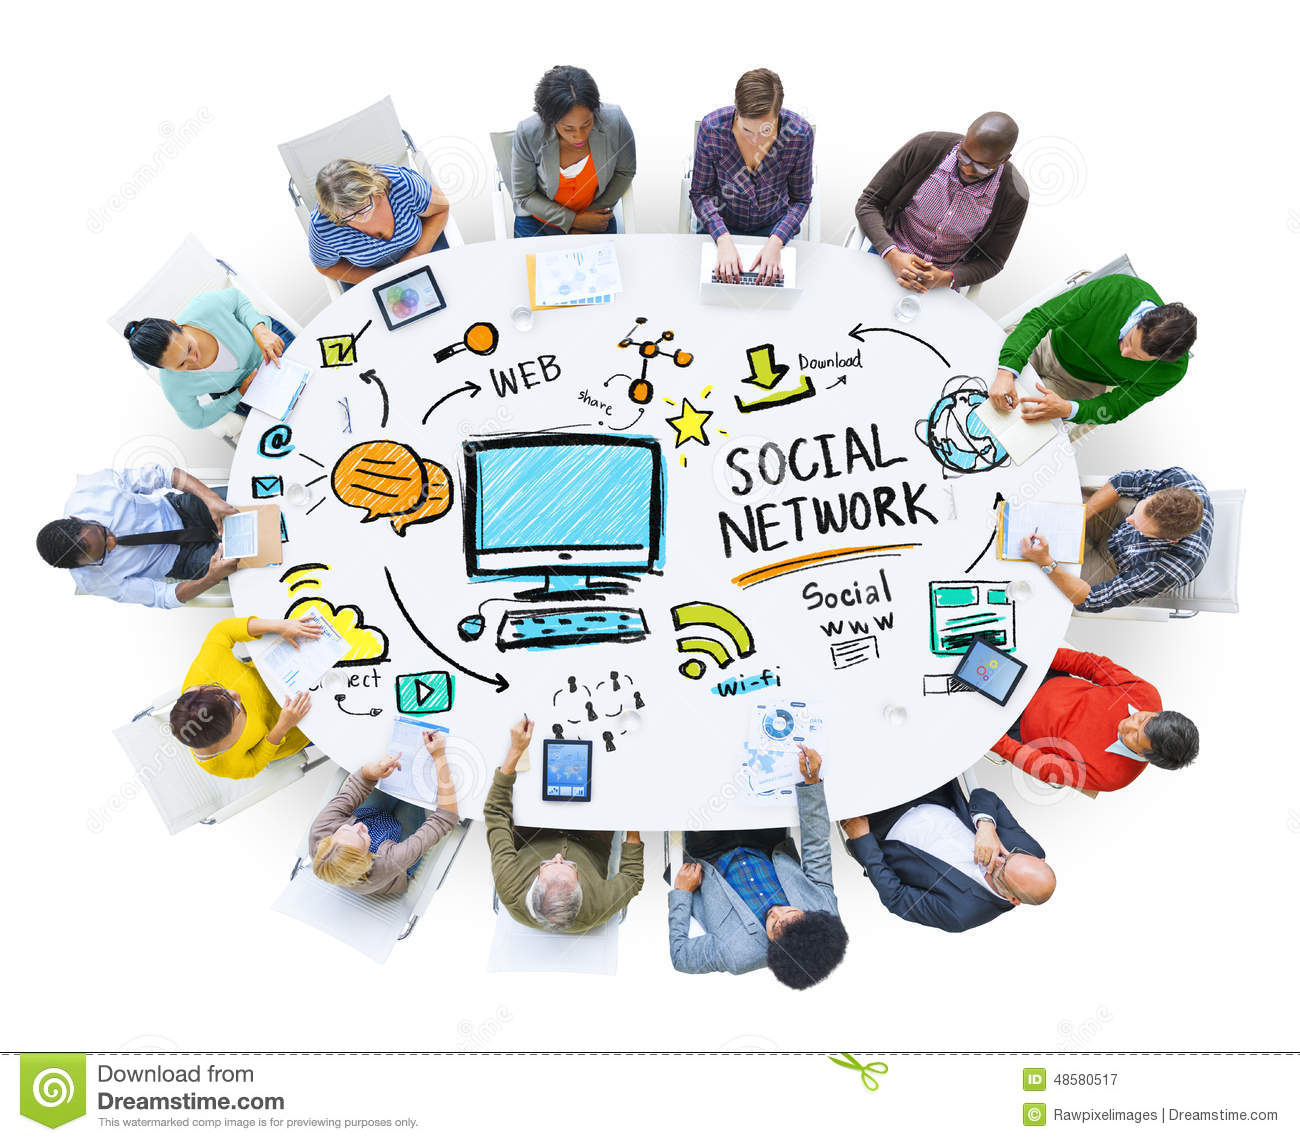 Social Network Social Media People Meeting Communication